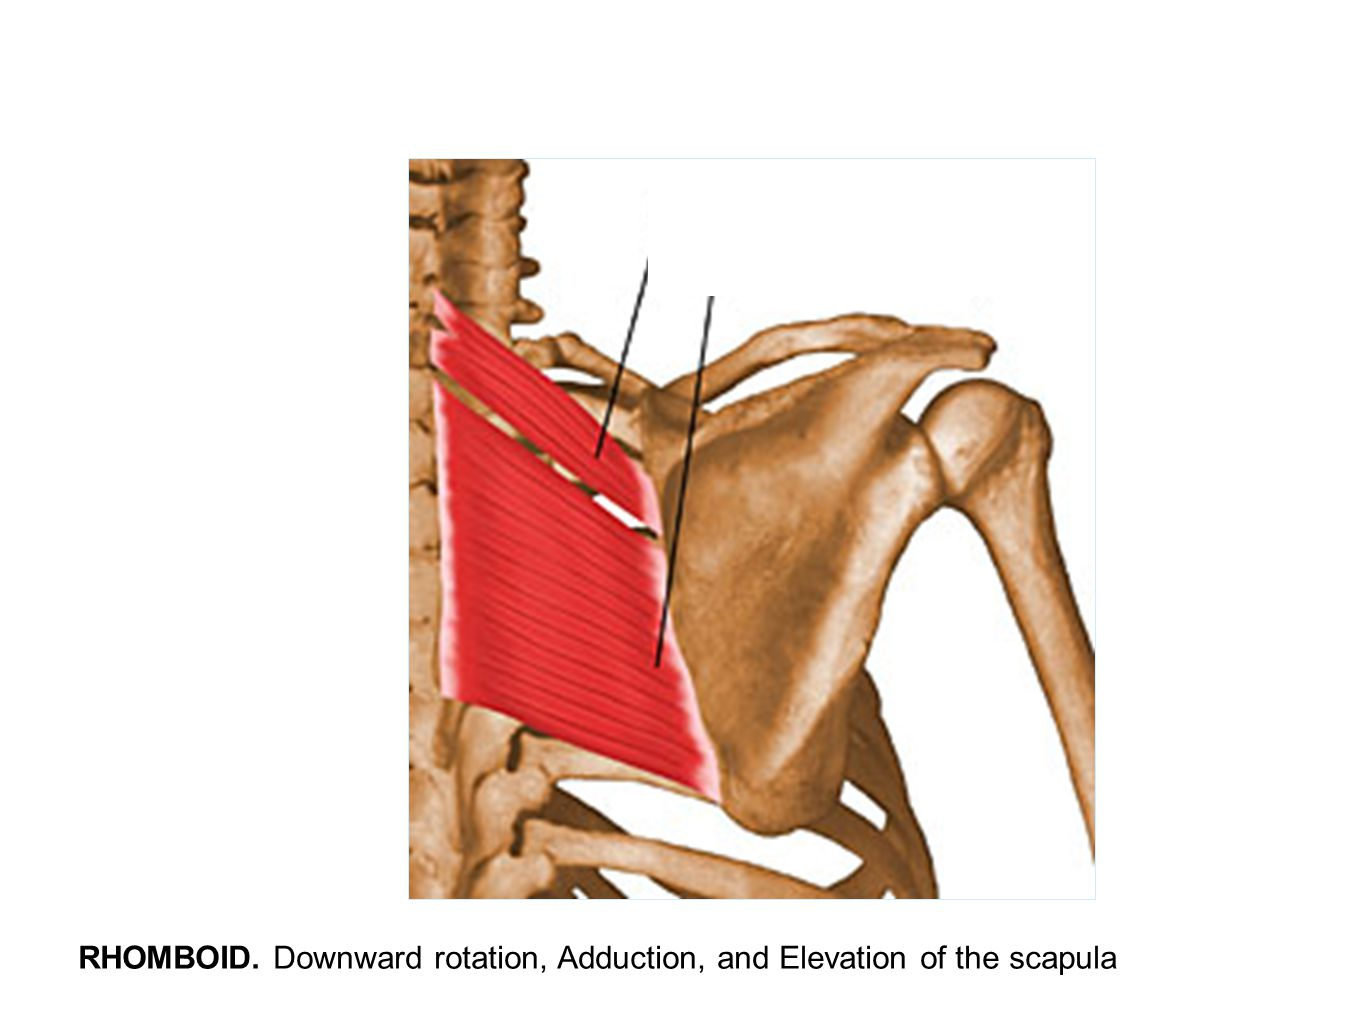 RHOMBOID. Downward rotation, Adduction, and Elevation of the scapula